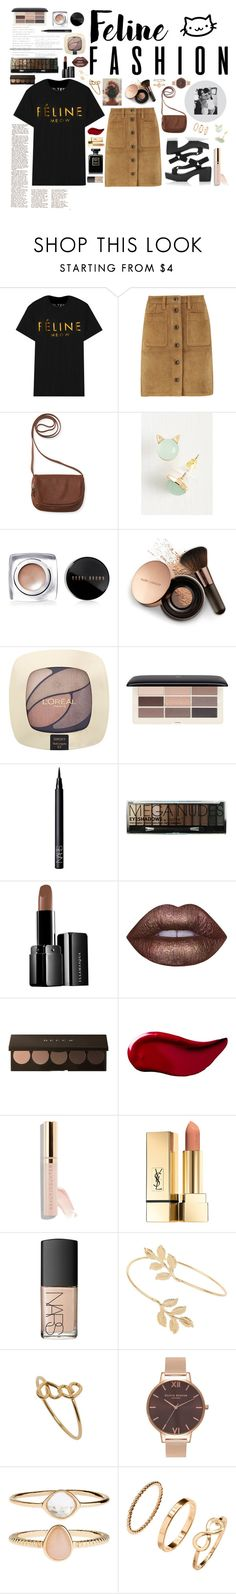 """""""Feline_Cat_Fashion"""" by tonilovesfashion ❤ liked on Polyvore featuring Brian Lichtenberg, rag & bone, Aéropostale, Bobbi Brown Cosmetics, Nude by Nature, L'Oréal Paris, H&M, NARS Cosmetics, Boohoo and Illamasqua"""